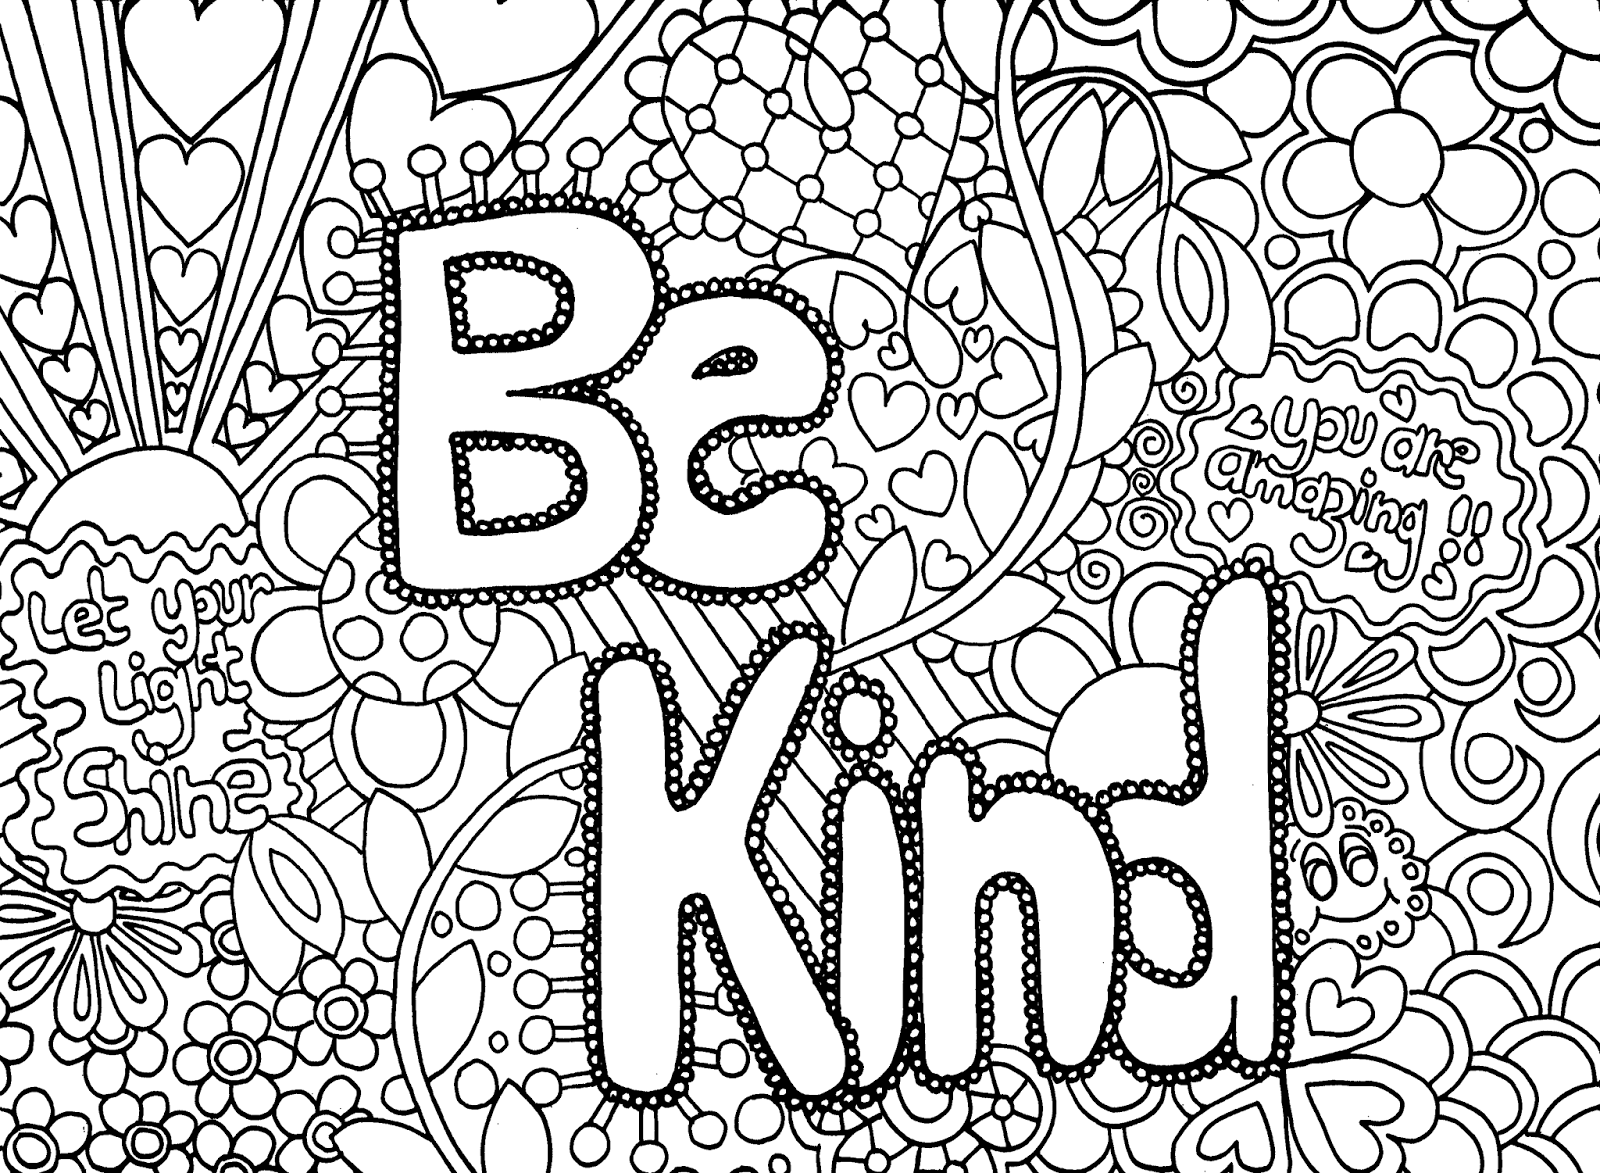 Printable Difficult Coloring Pages Glamorous Hard Coloring Pages For Adults  Best Coloring Pages For Kids